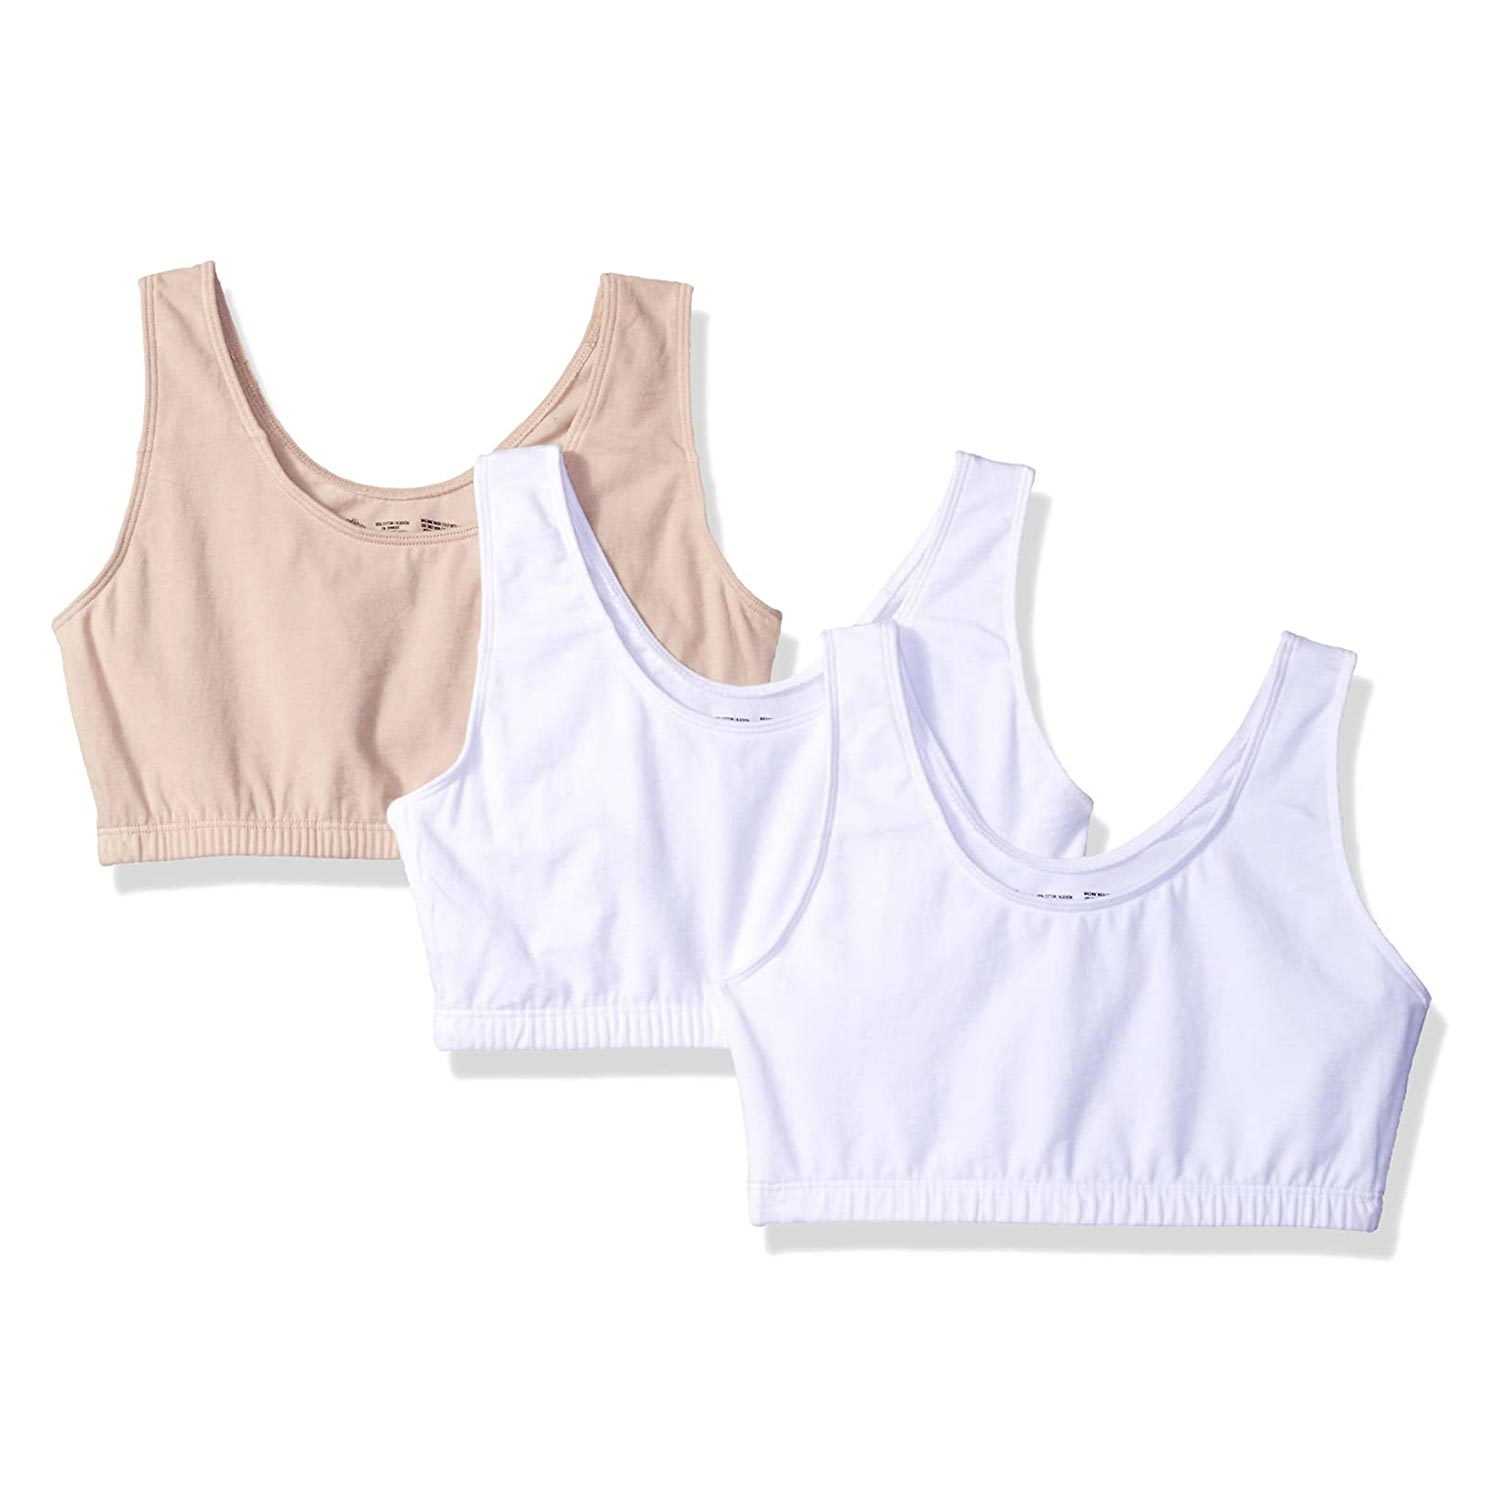 Fruit of the Loom Women's Built Up Tank Style Sports Bra, 3-Pack